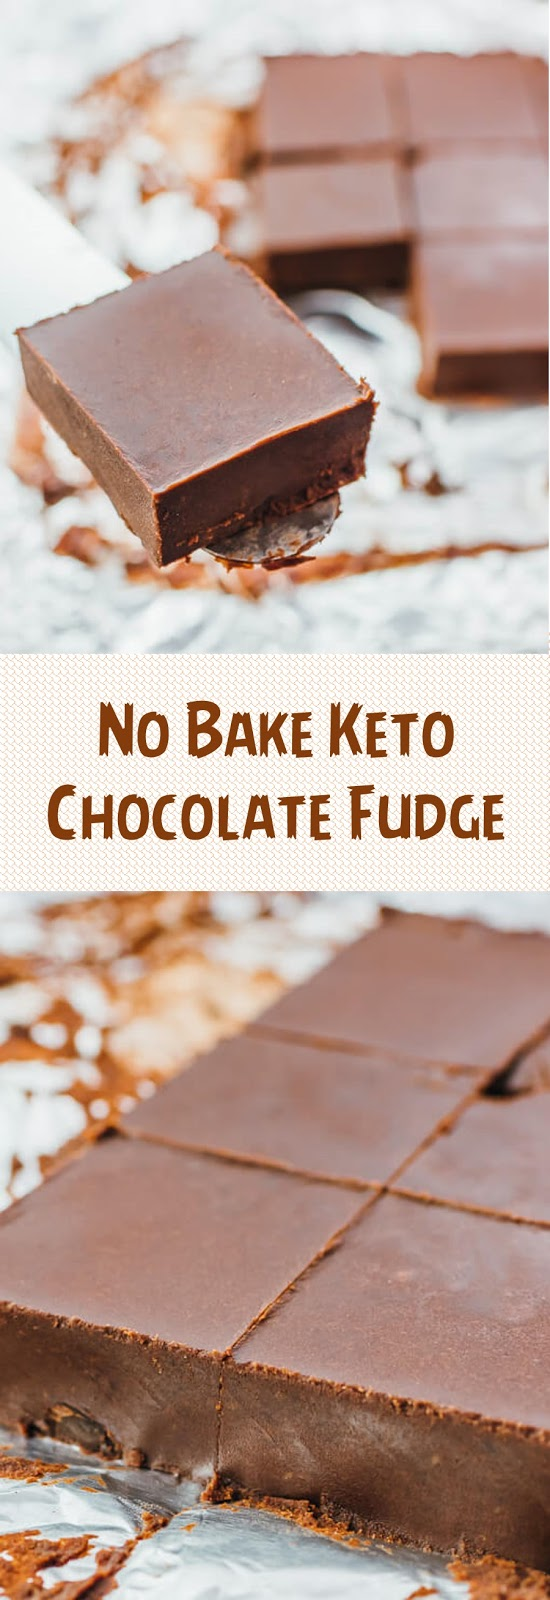 No Bake Keto Chocolate Fudge